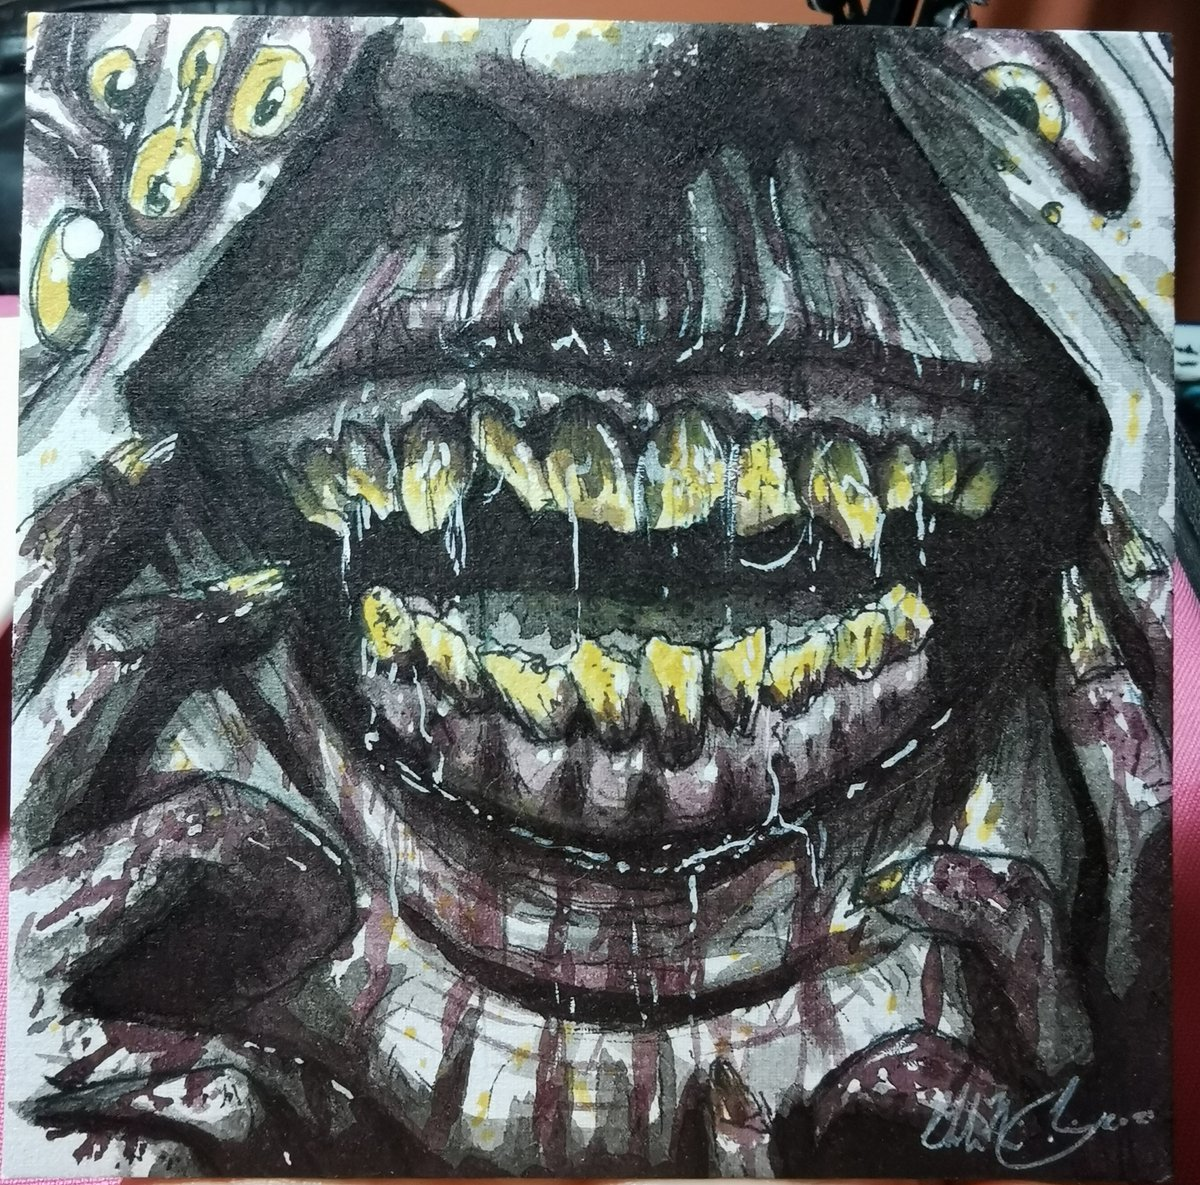 Stream over! The ink is great not too opaque great for layers. #horror #monster #creepy #inkdrawing #artistsontwitter